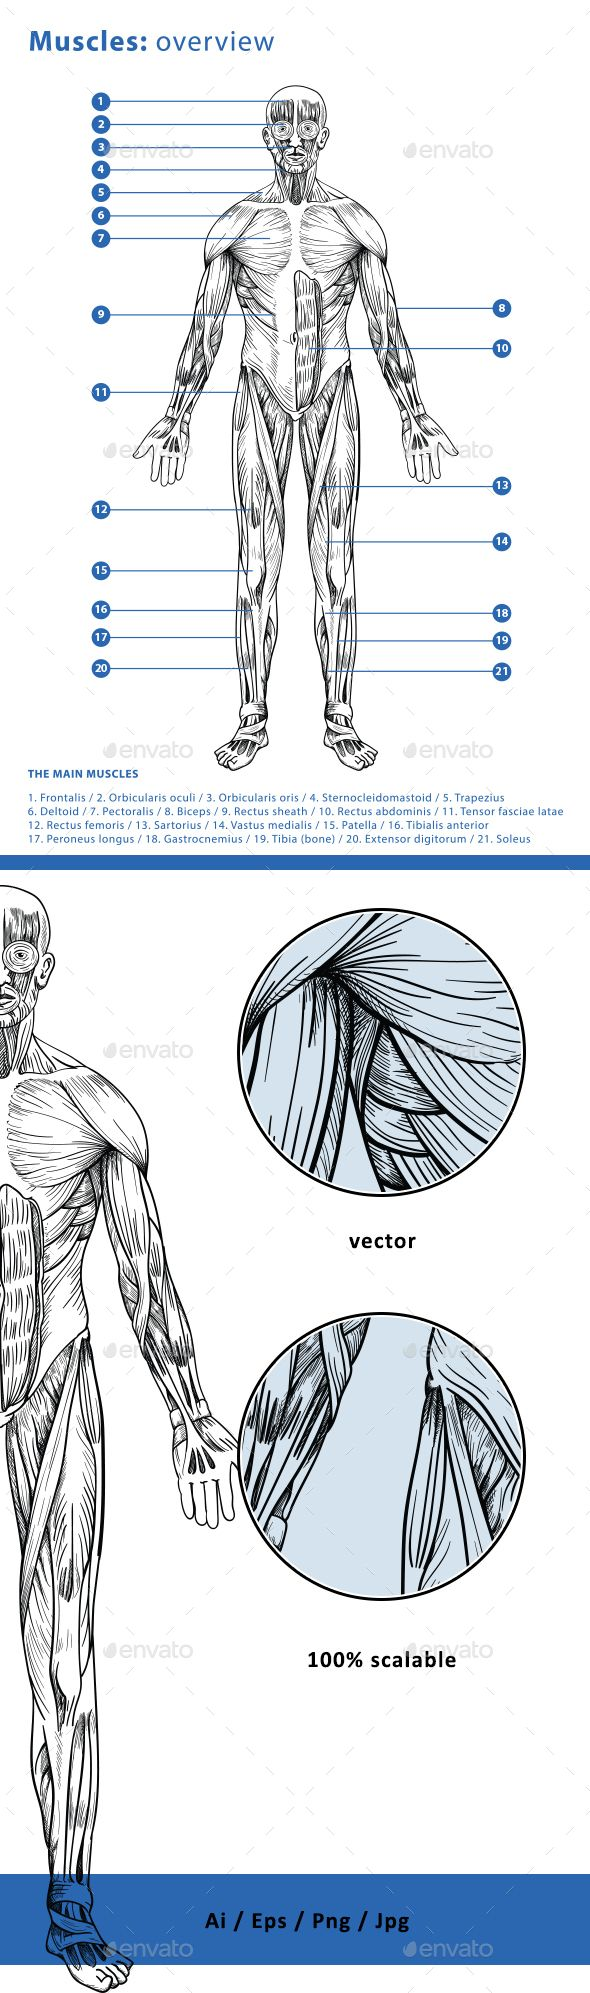 Muscles: Overview - Health/Medicine Conceptual